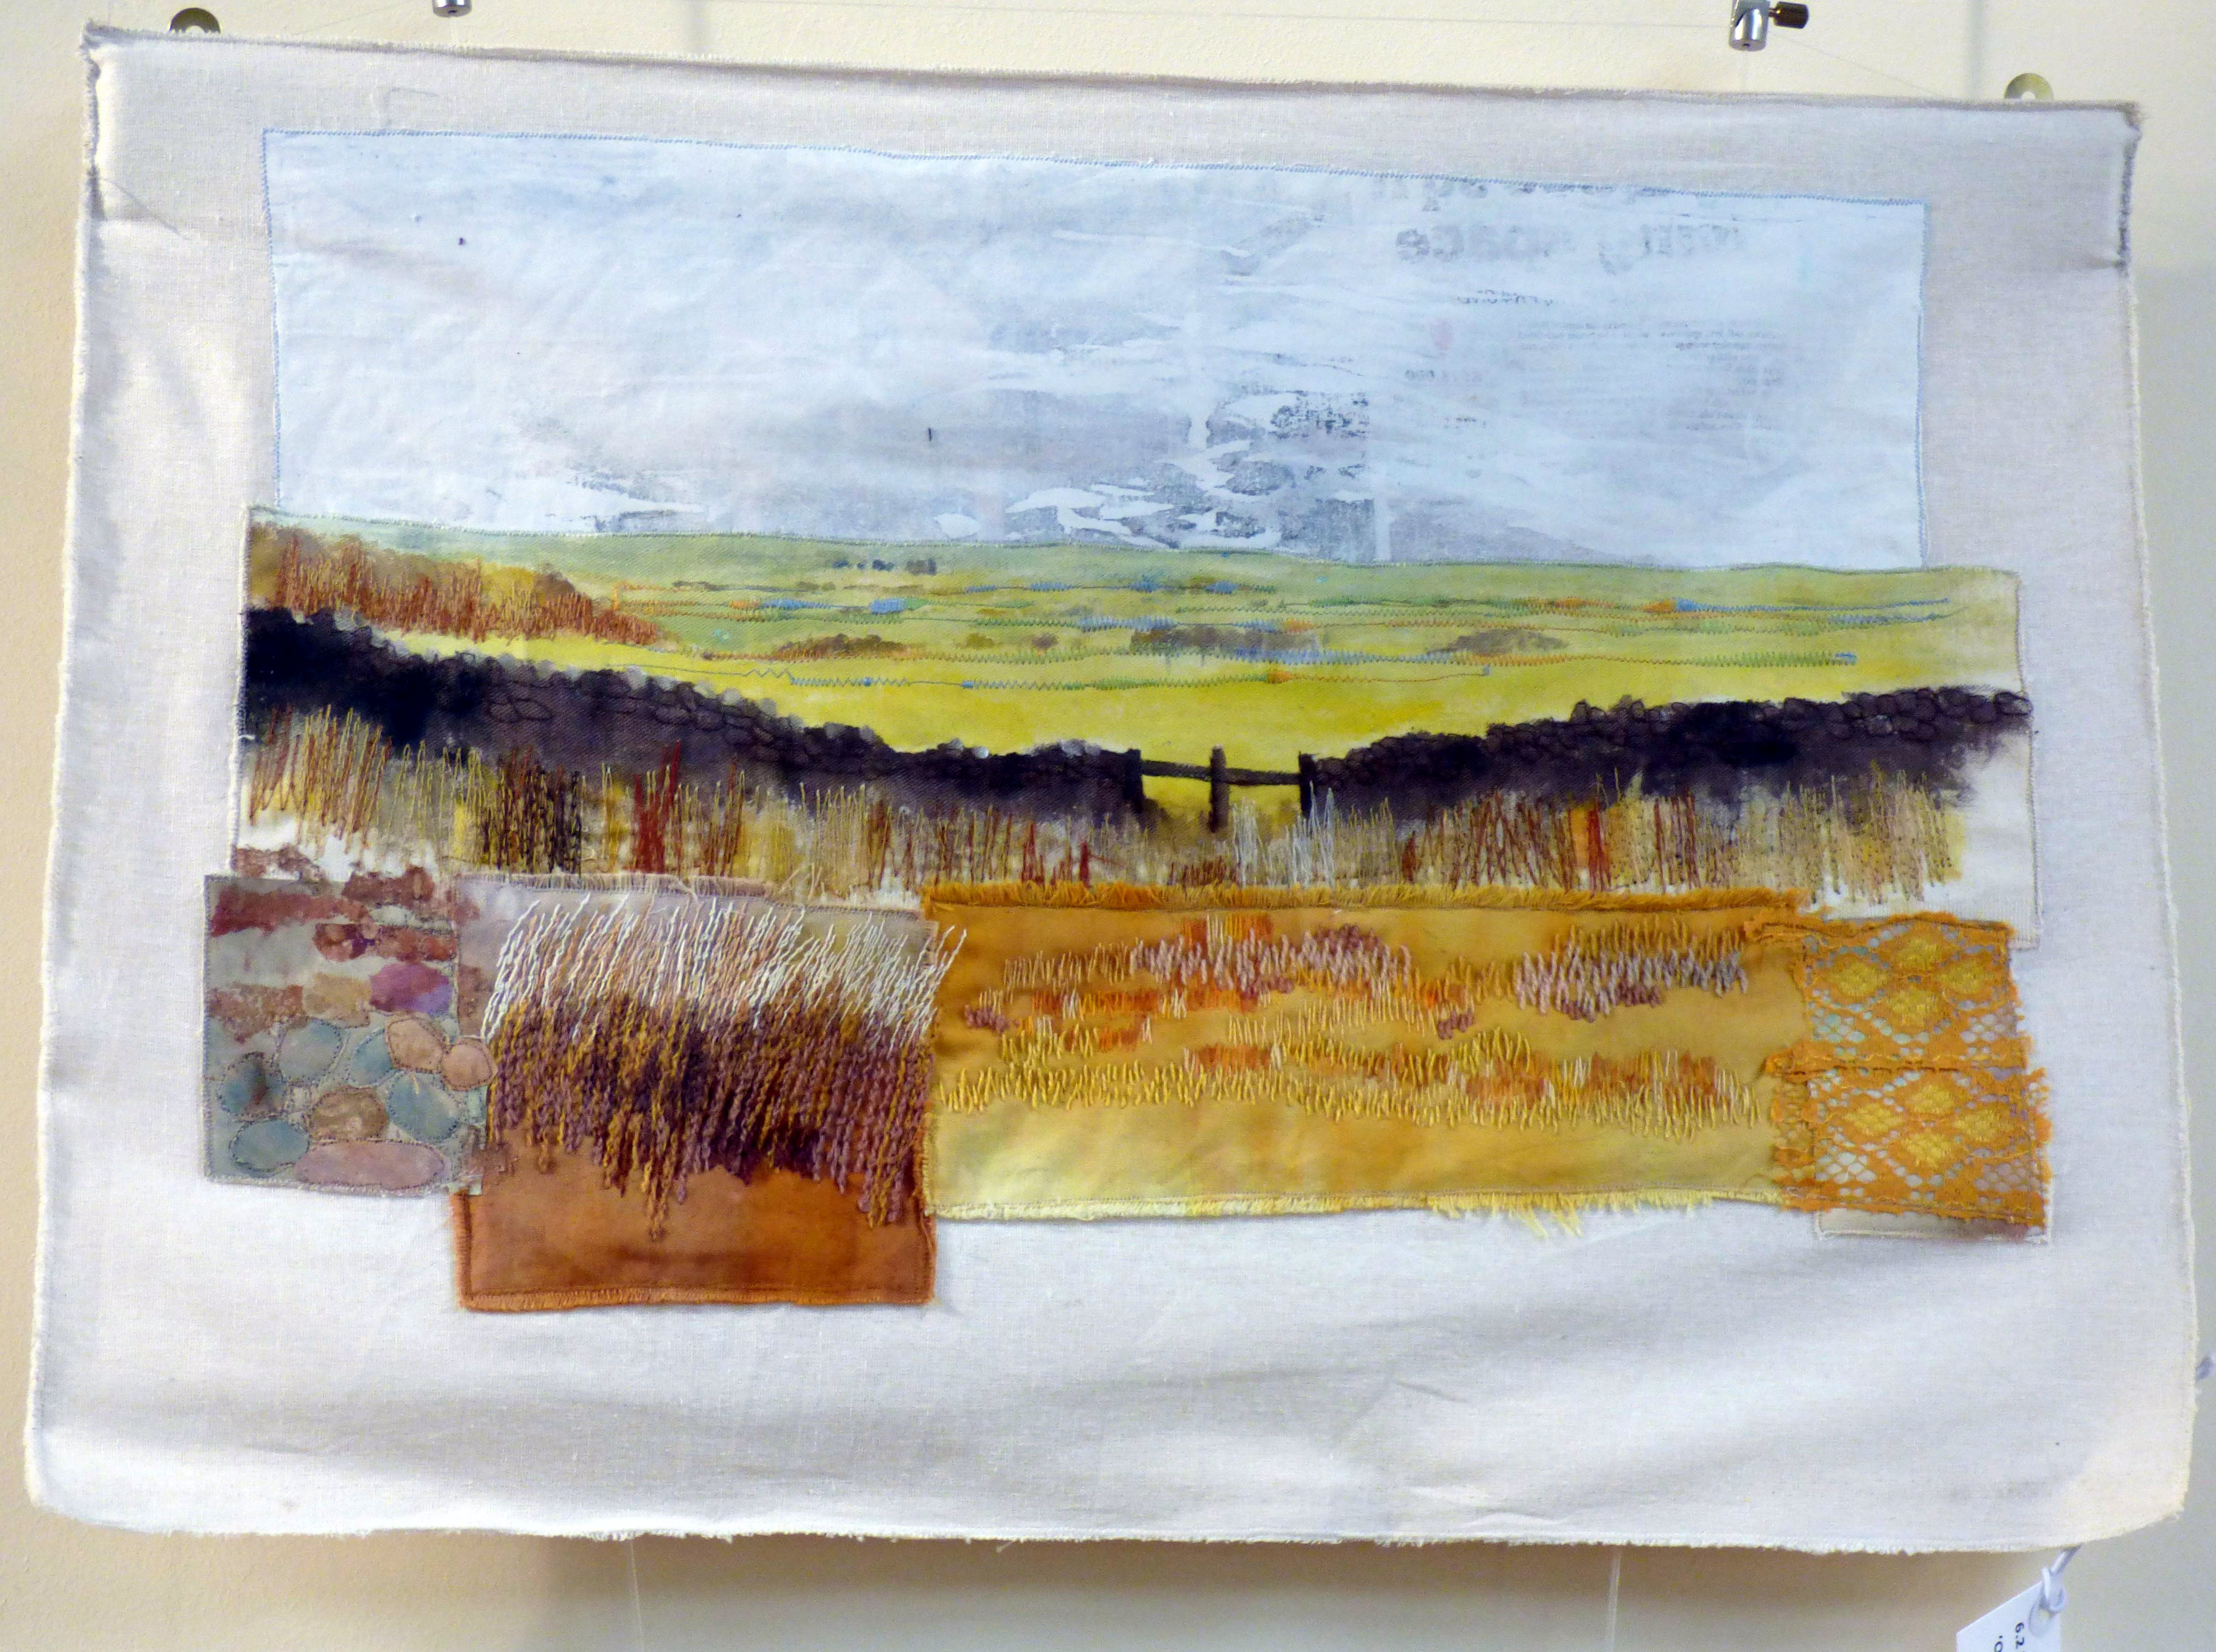 OLD SCRAPS-NEW VIEWS by Nicky Robertson, Natural Progression Textile Group, Jan 2020